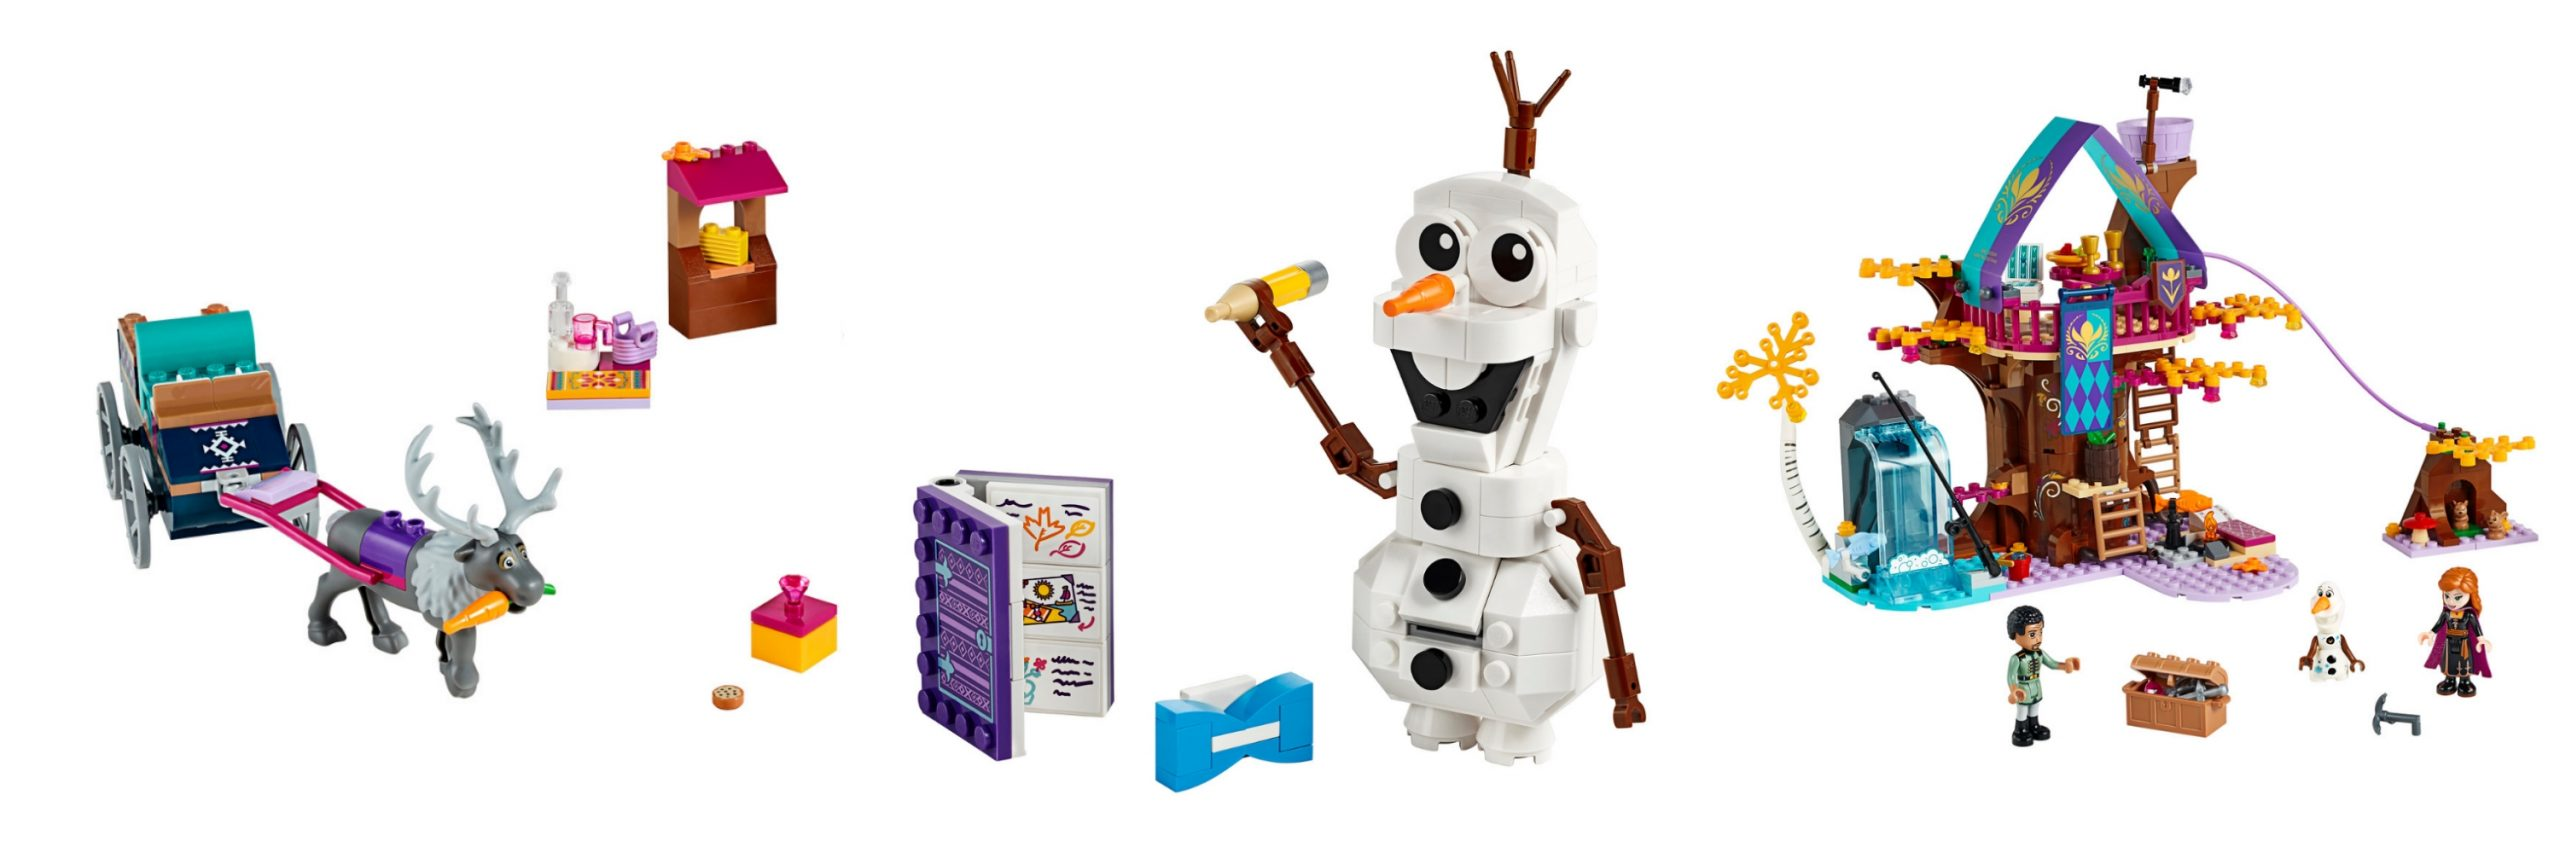 Frozen 2 Lego Sets: the best Frozen 2 merchandise